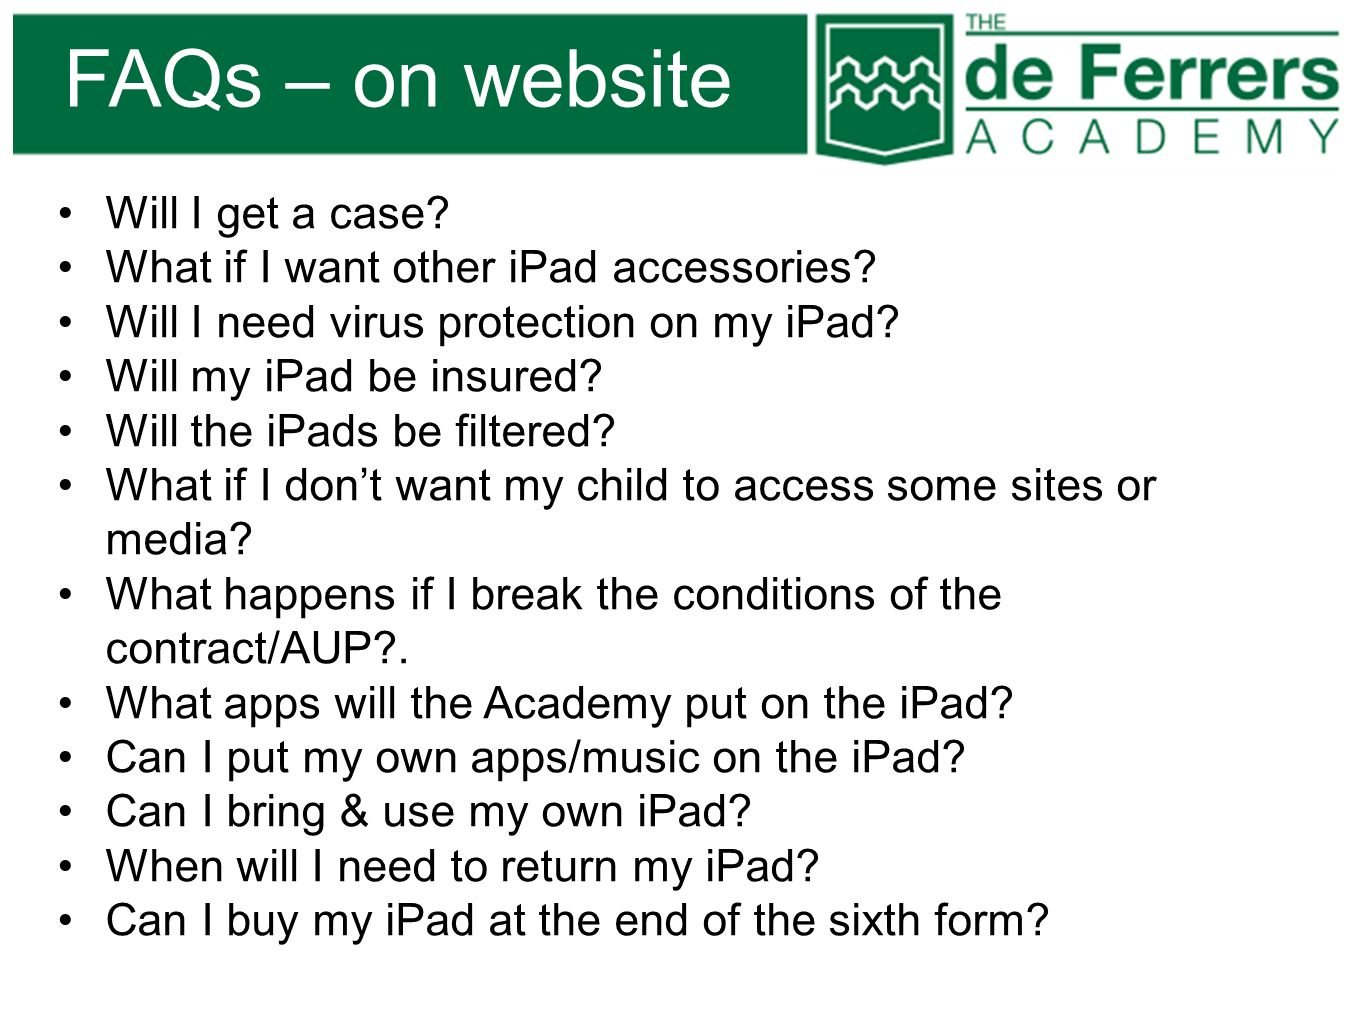 Will I get a case? What if I want other iPad accessories? Will I need virus protection on my iPad? Will my iPad be insured? Will the iPads be filtered